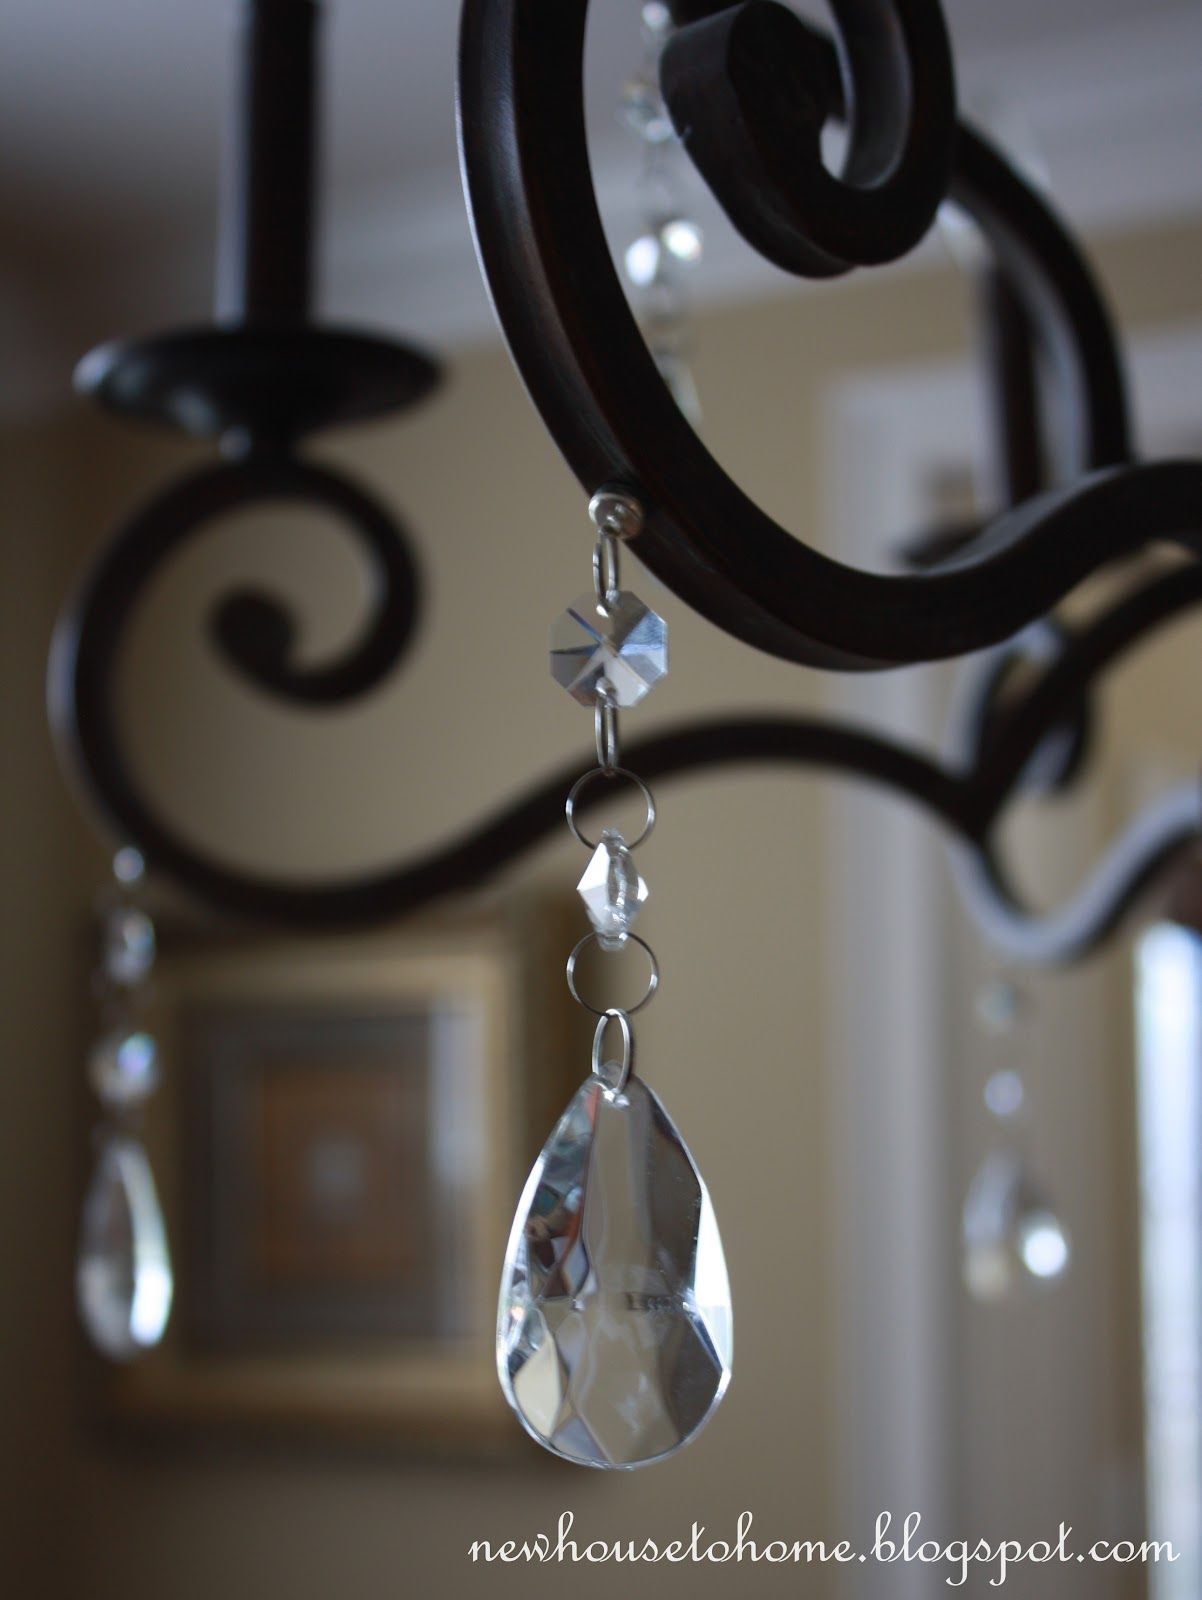 Magnetic Crystals Or Other Holiday Decor Great Idea Projects To - Chandelier crystals magnetic